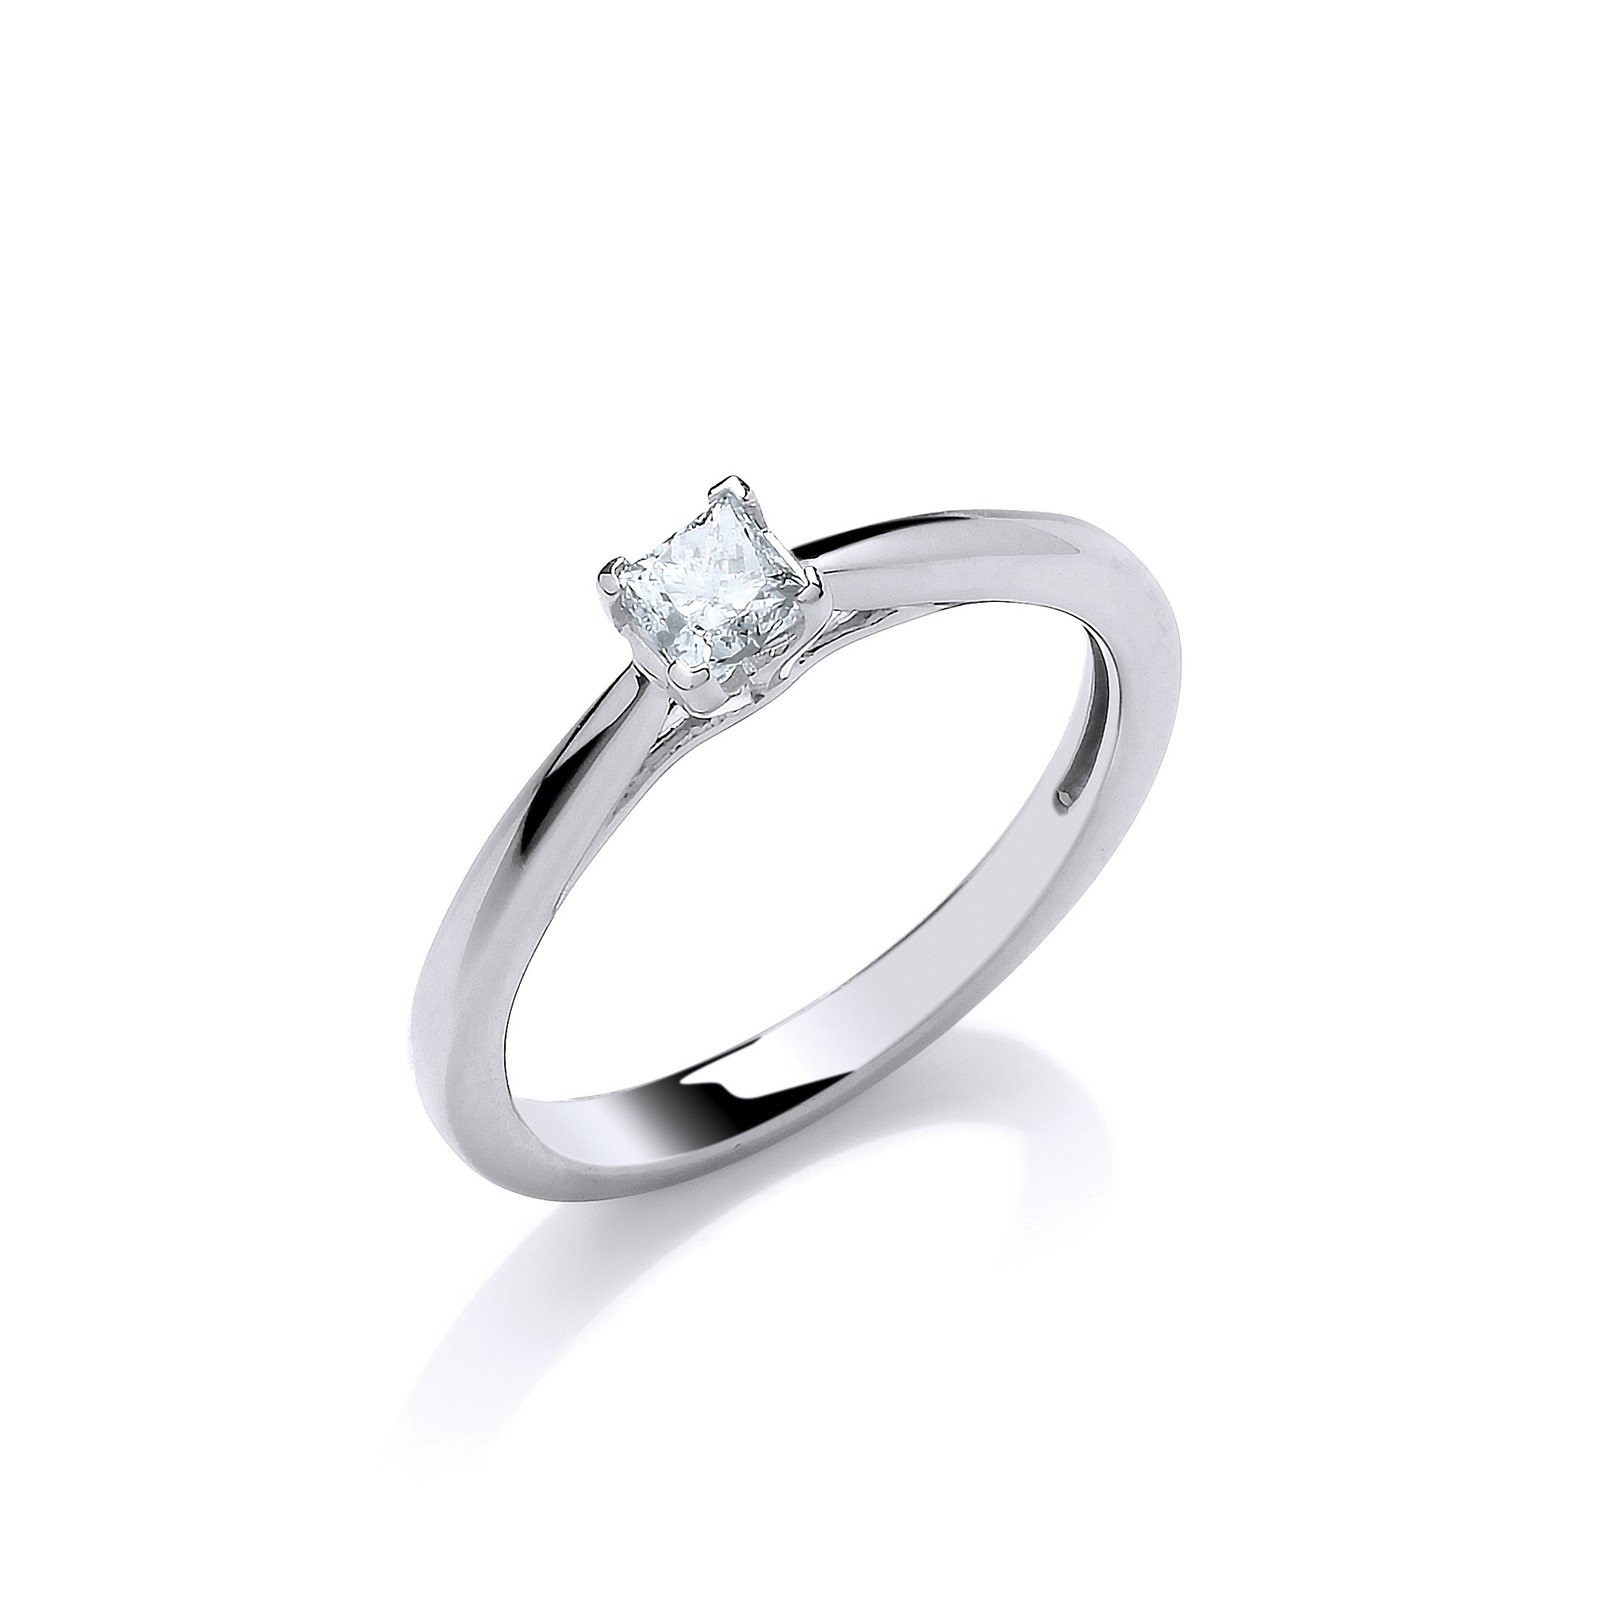 18ct White Gold 0.25ct Princess Cut Diamond Engagement Ring